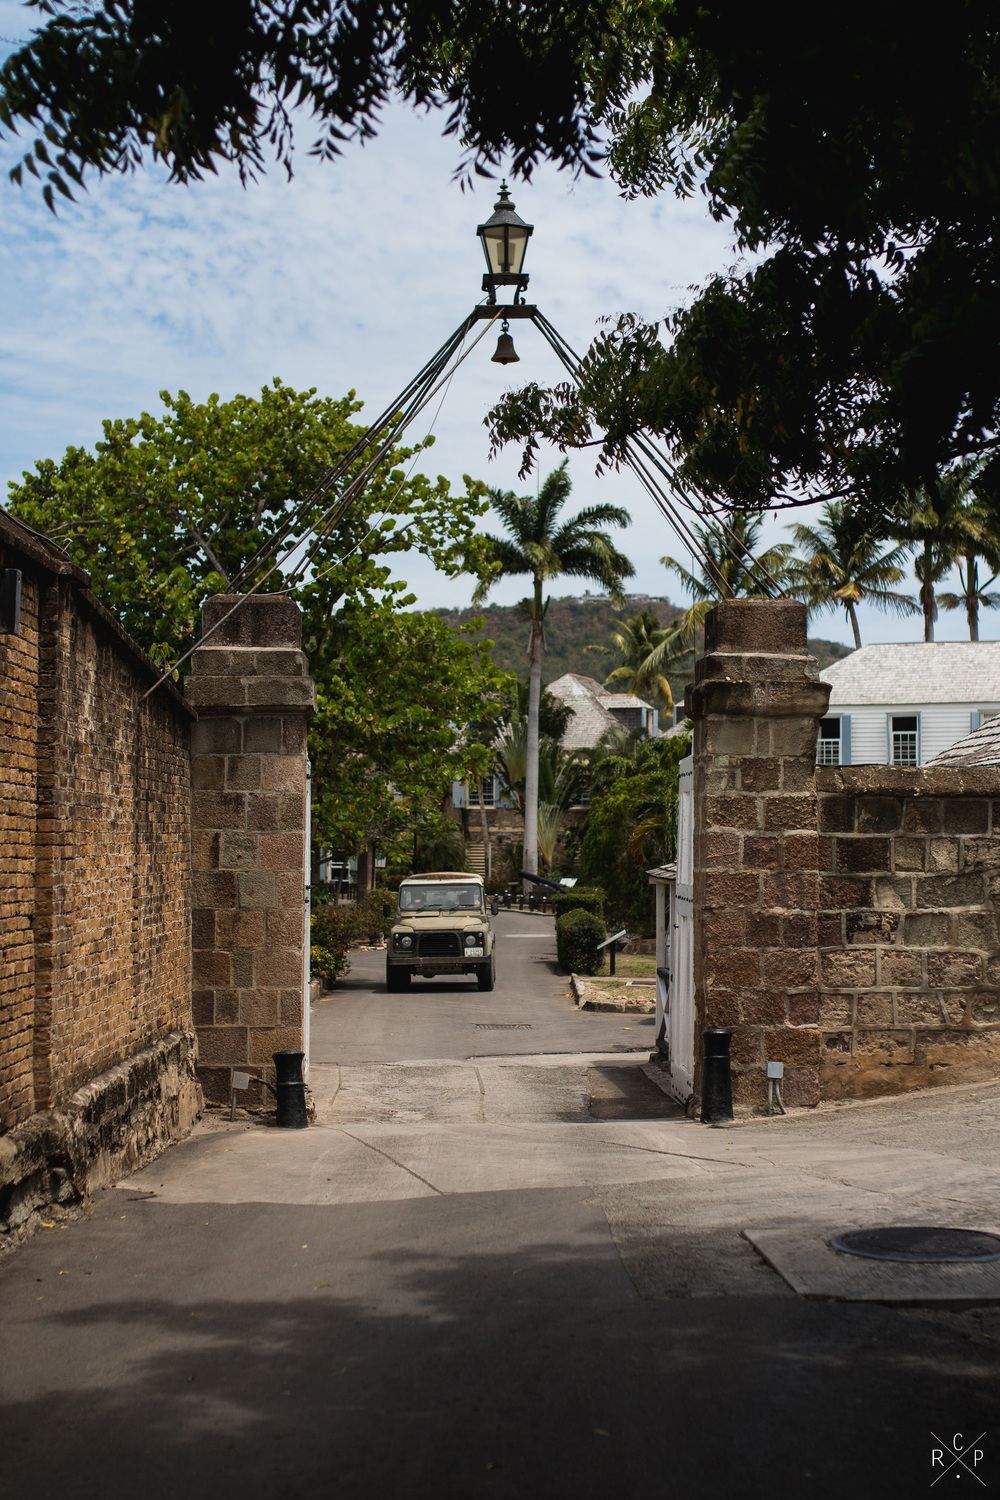 Entranceway - Nelson's Dockyard, English Harbour, Antigua 01/04/2016